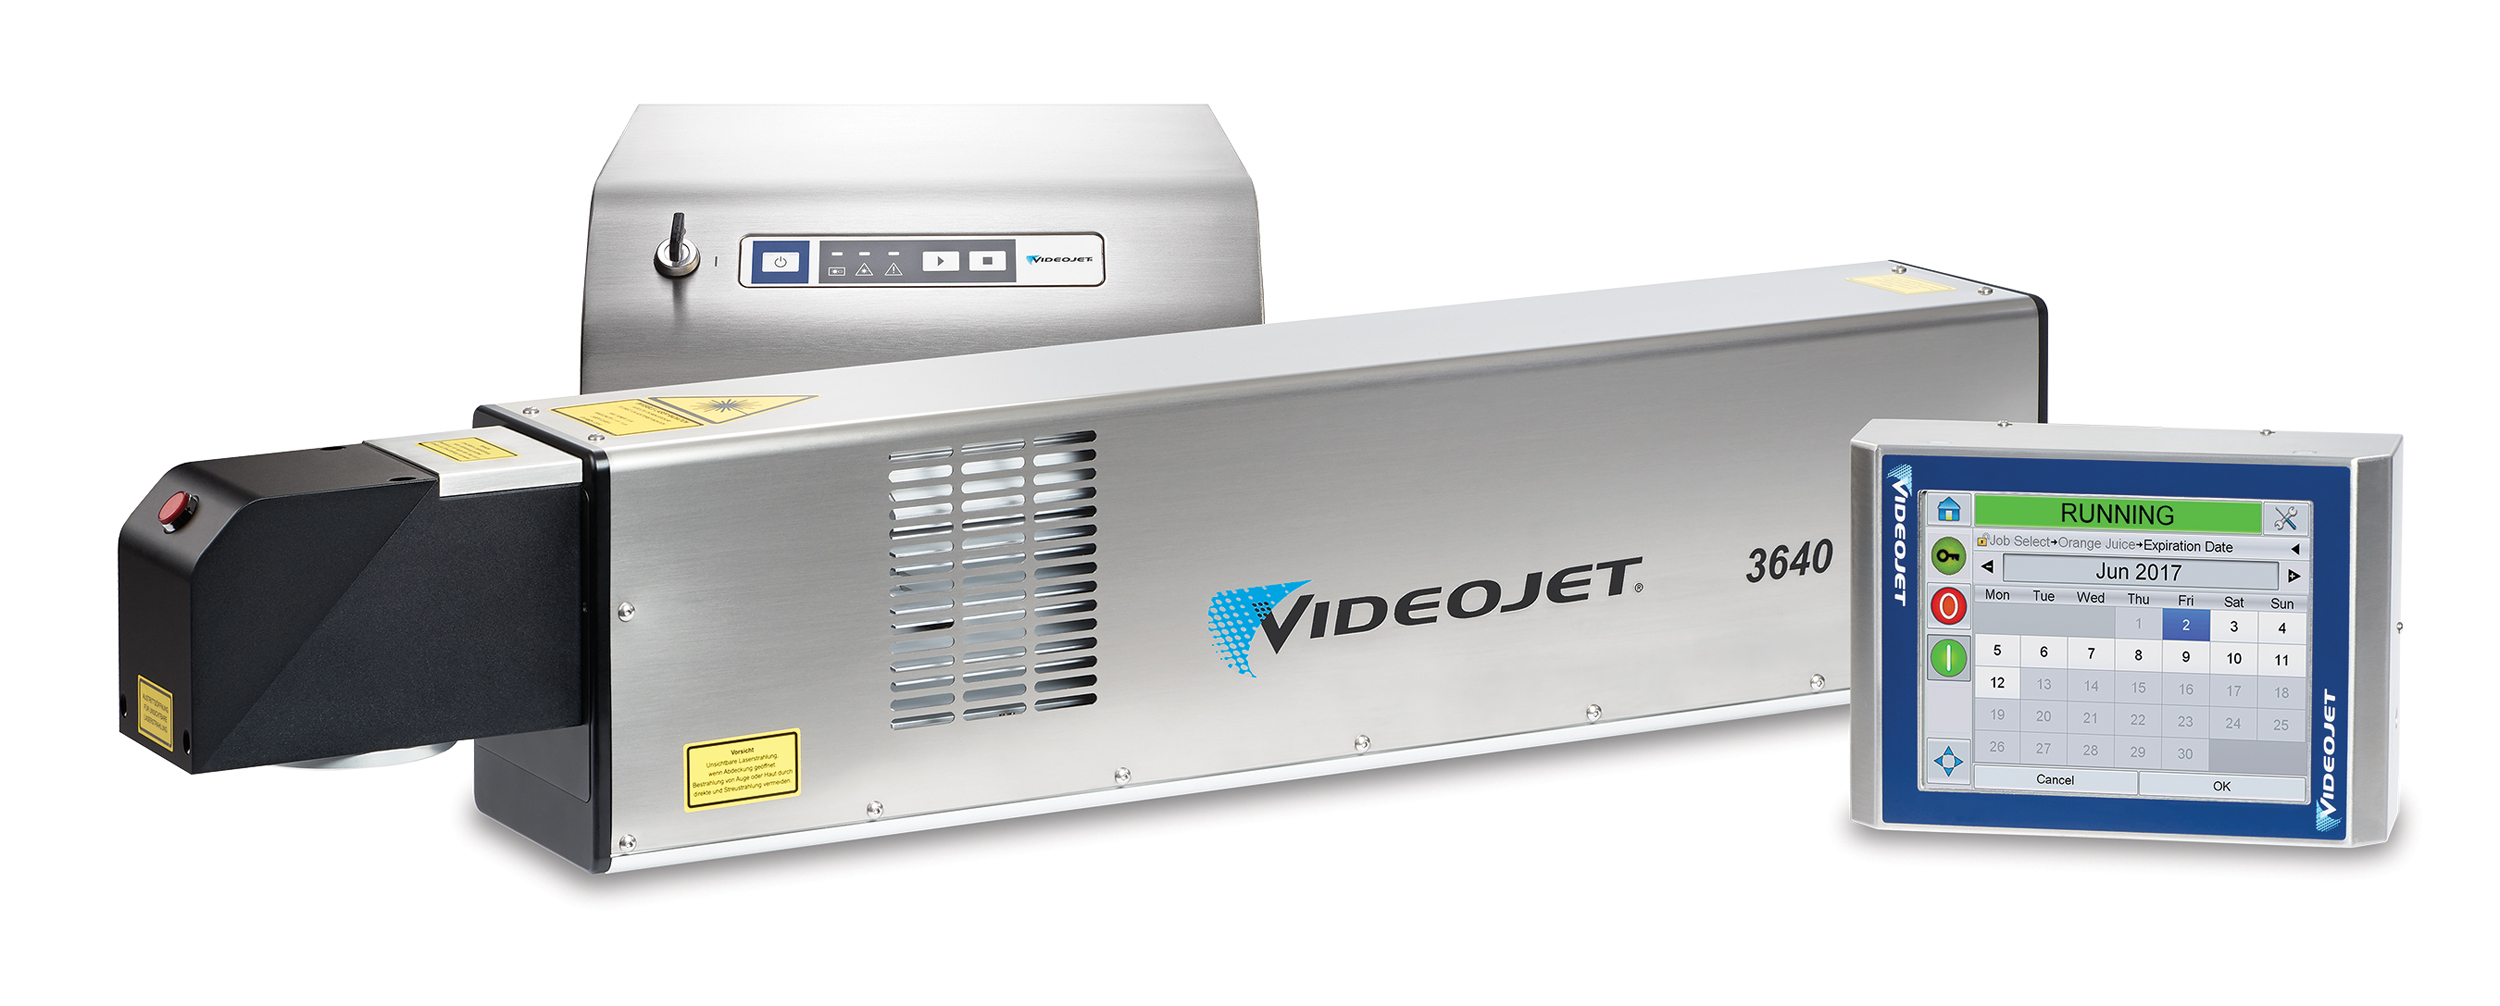 Videojet-3640-left-controller-screen